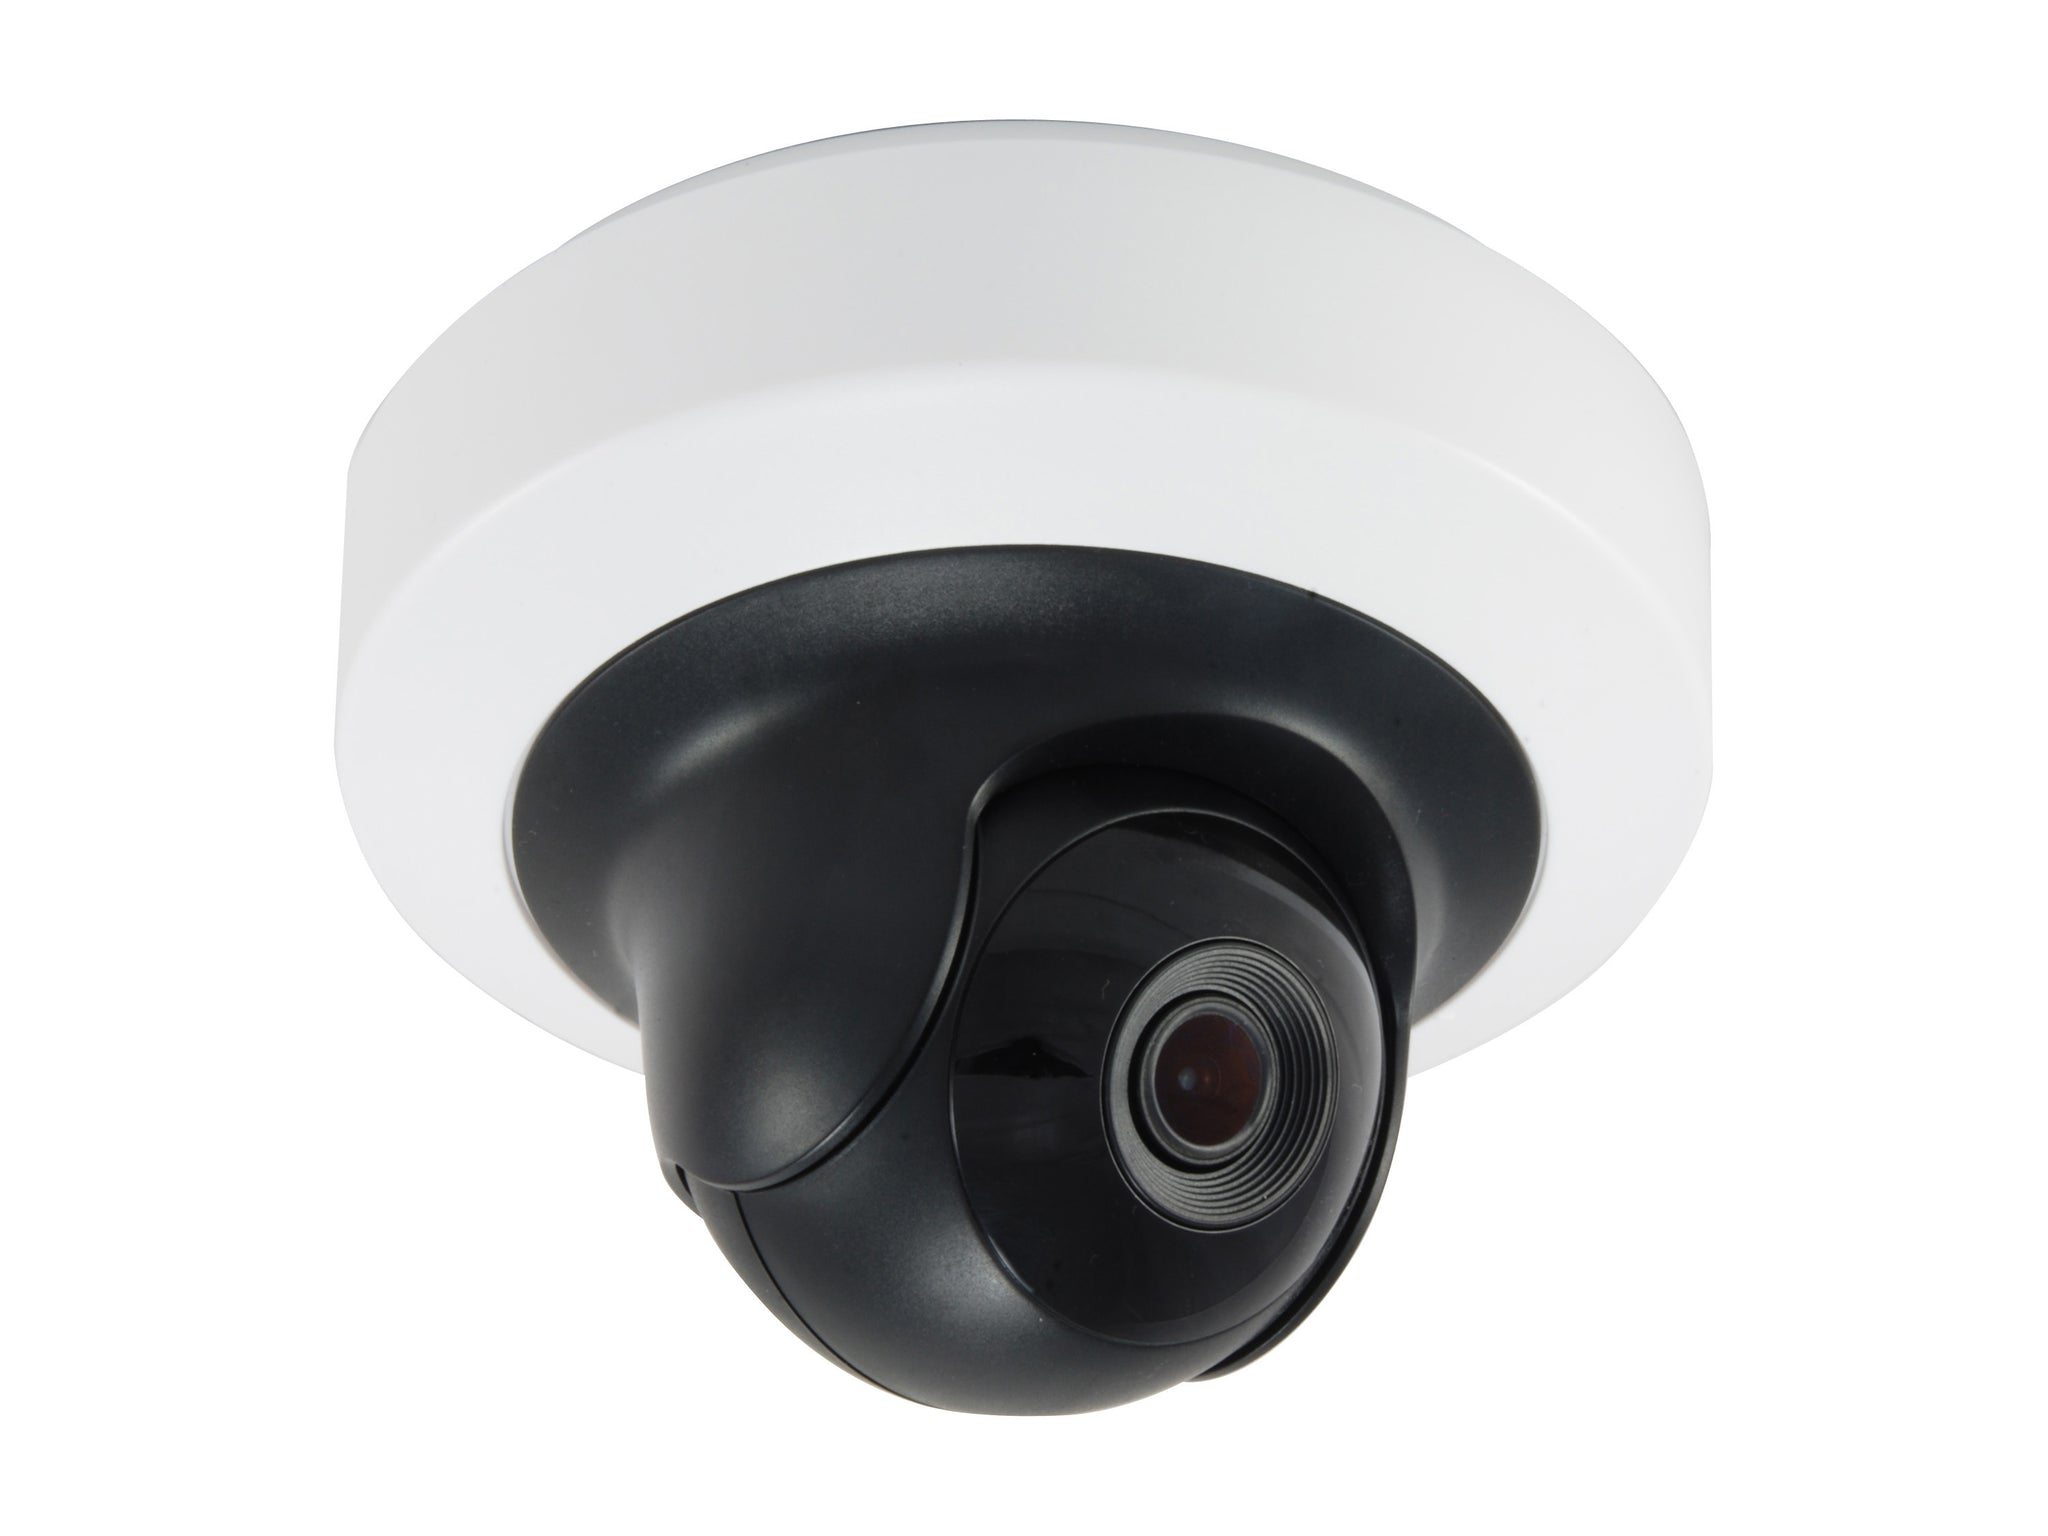 FCS-4103 PT Network Camera, 802.3af PoE, IR LEDs, PT 4MP, day & night